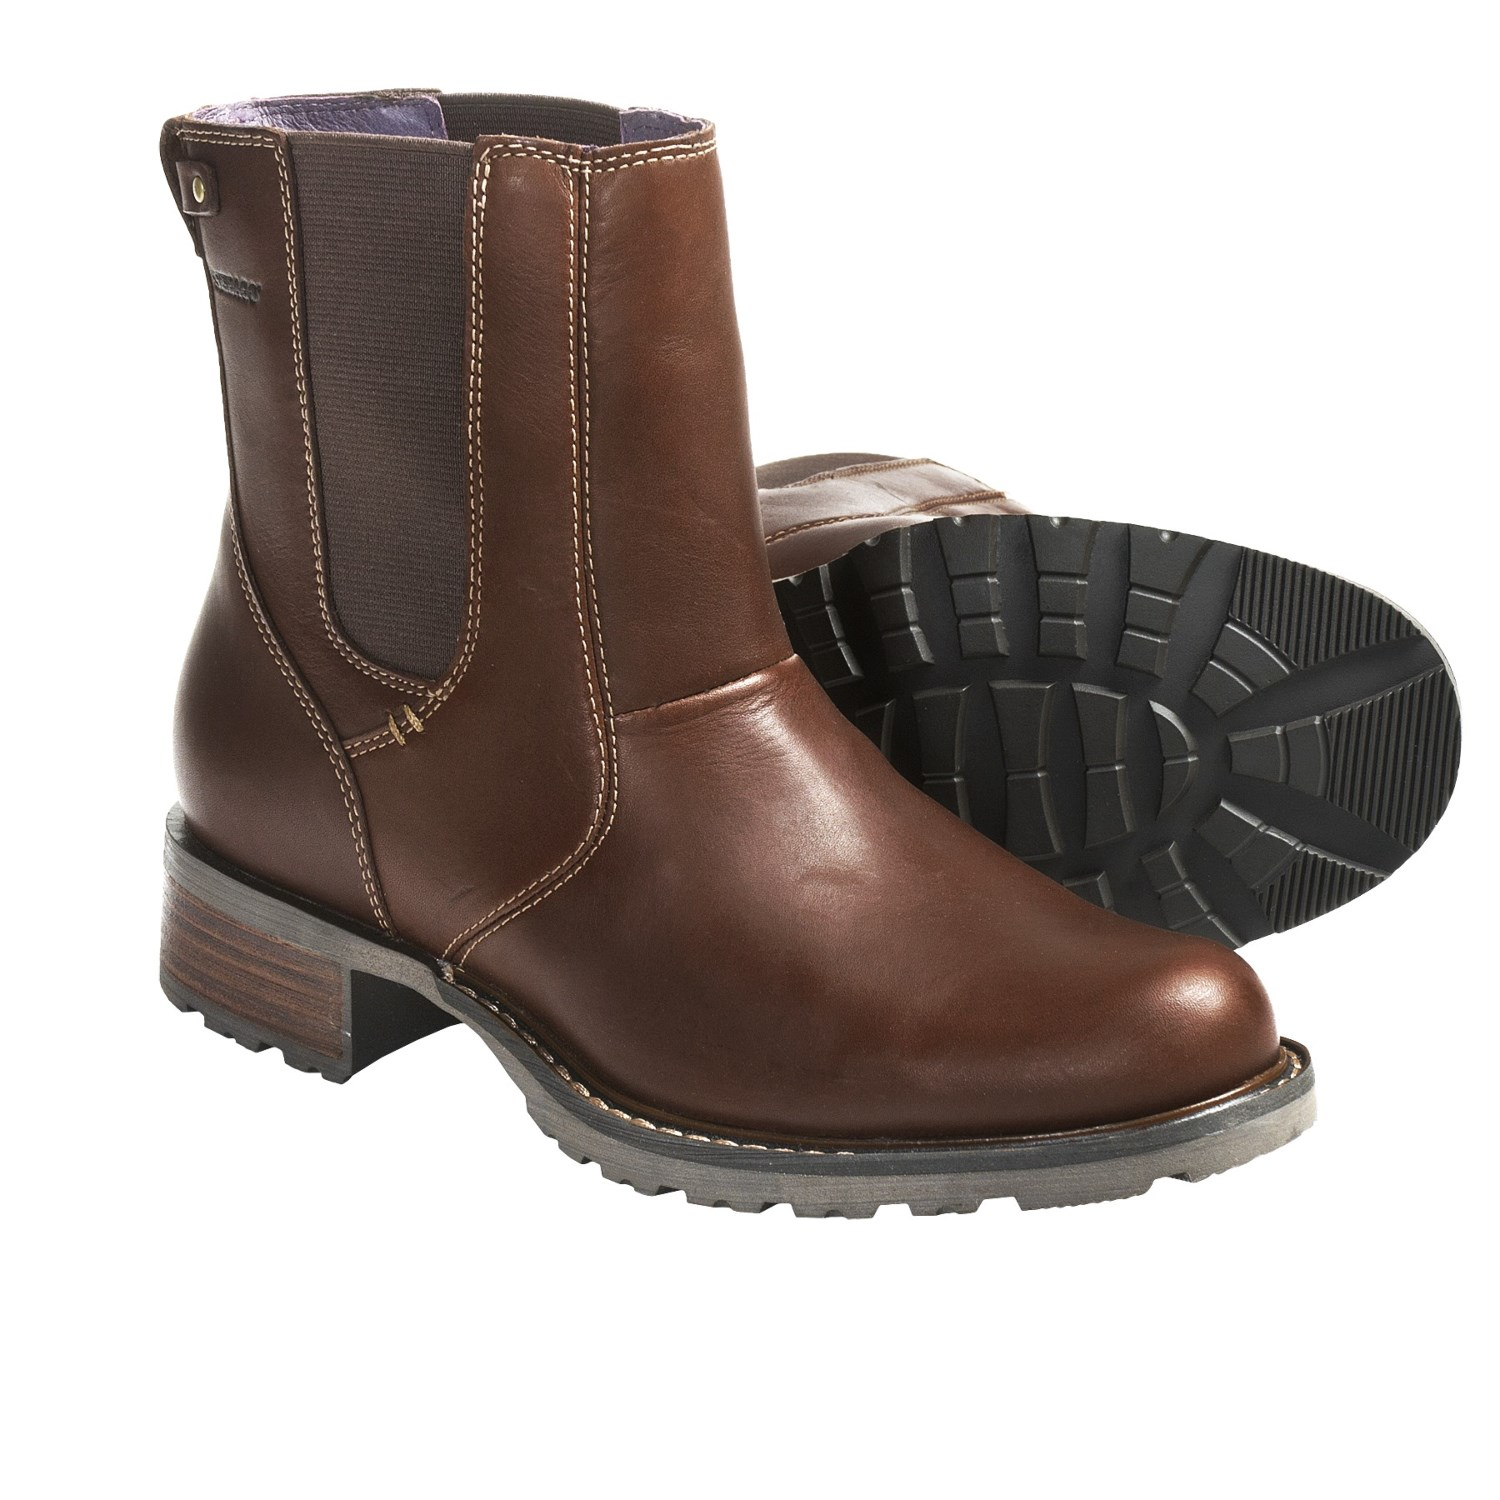 Perfect Double Your Traffic Payment  Shipping  Additional Information  Policies Merrell Polartec Black Terra Pitch Waterproof Ankle Boots, Womens Size 8 B32 Click To View Image Album Click To View Image Album Click To View Image Album This